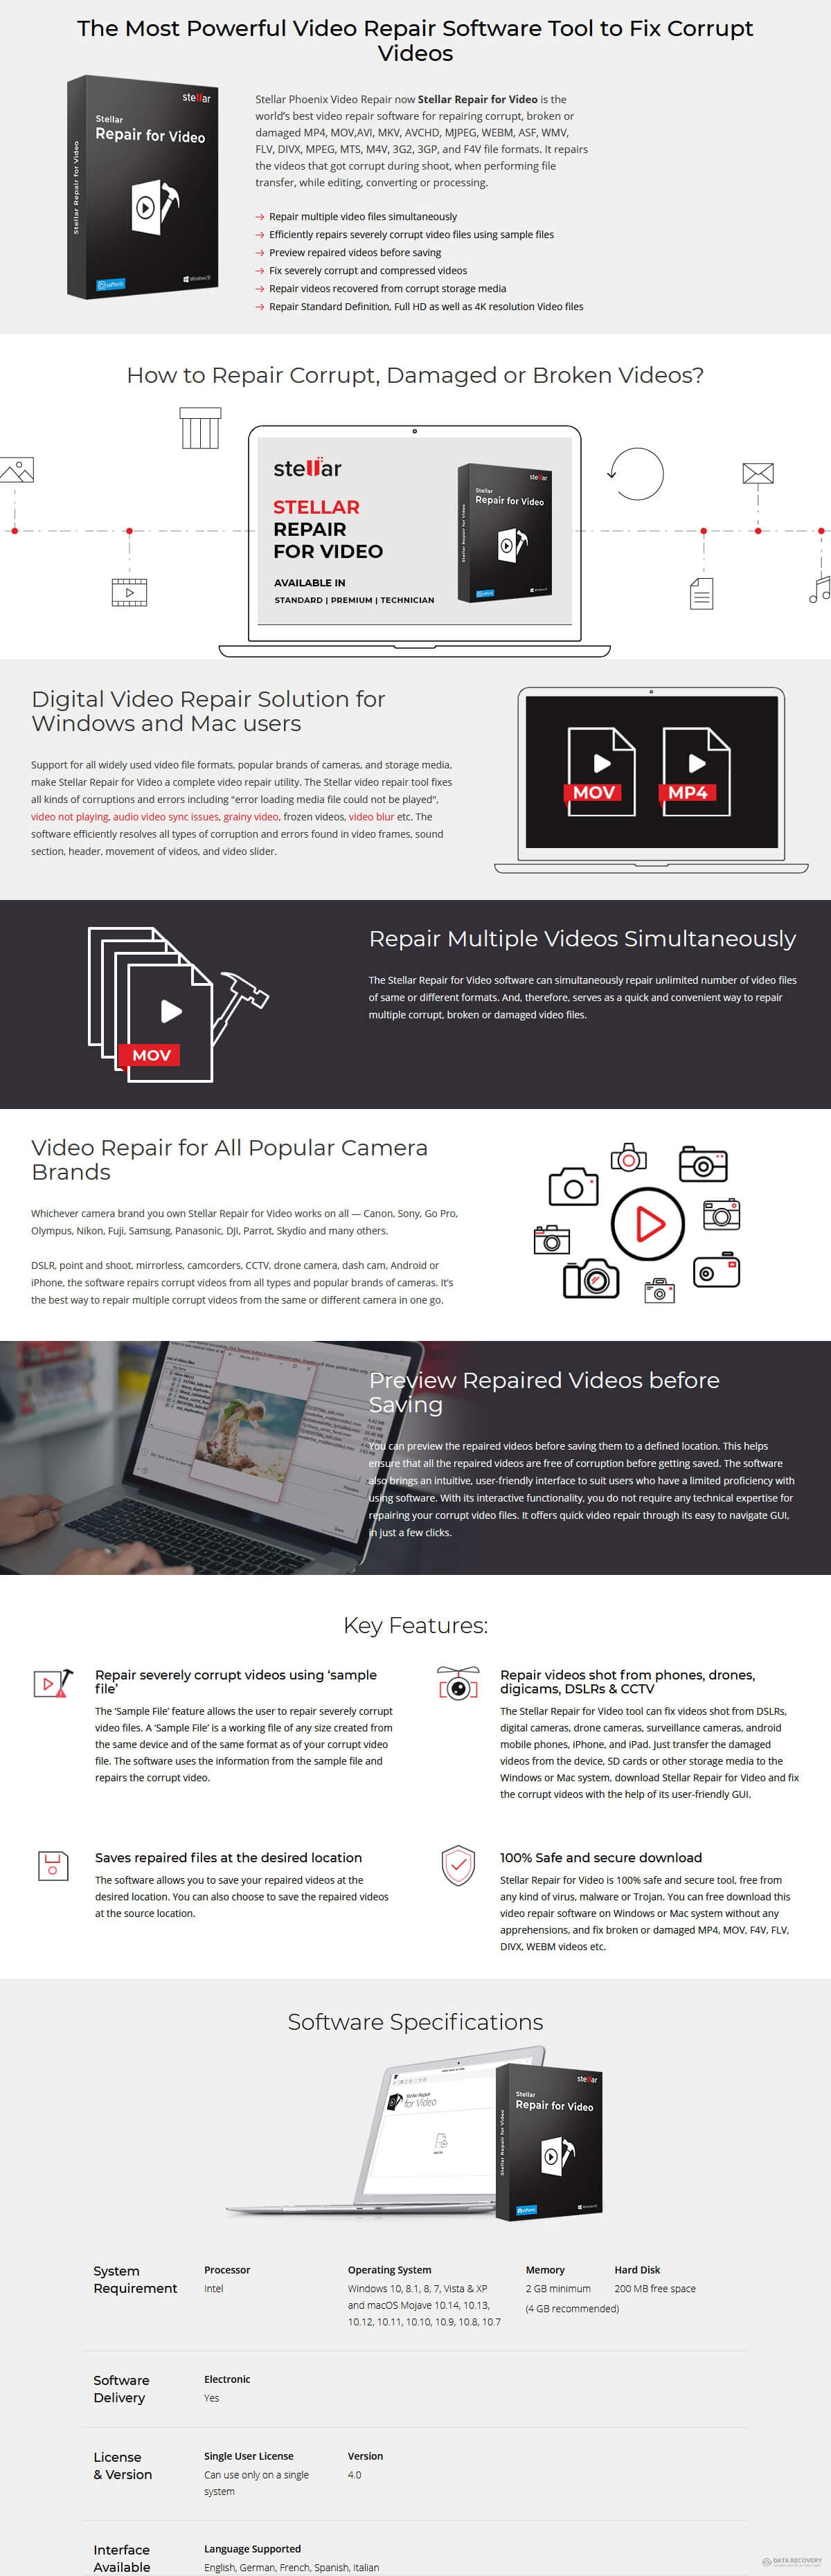 Stellar Repair for Video Discount Coupon Code